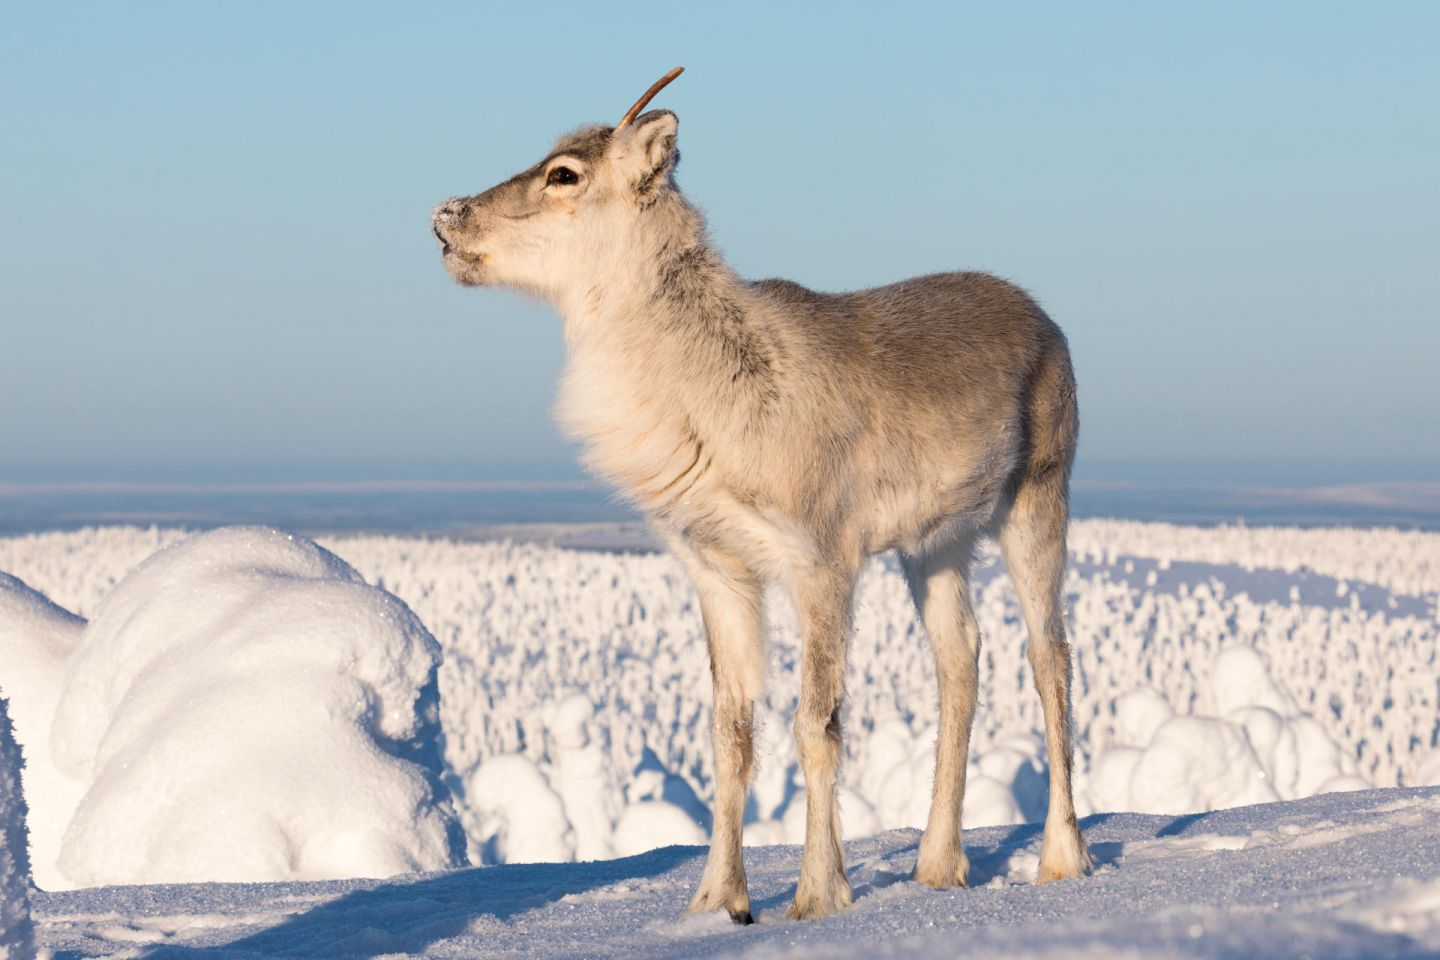 Ailo stands atop a fell in Posio, Lapland